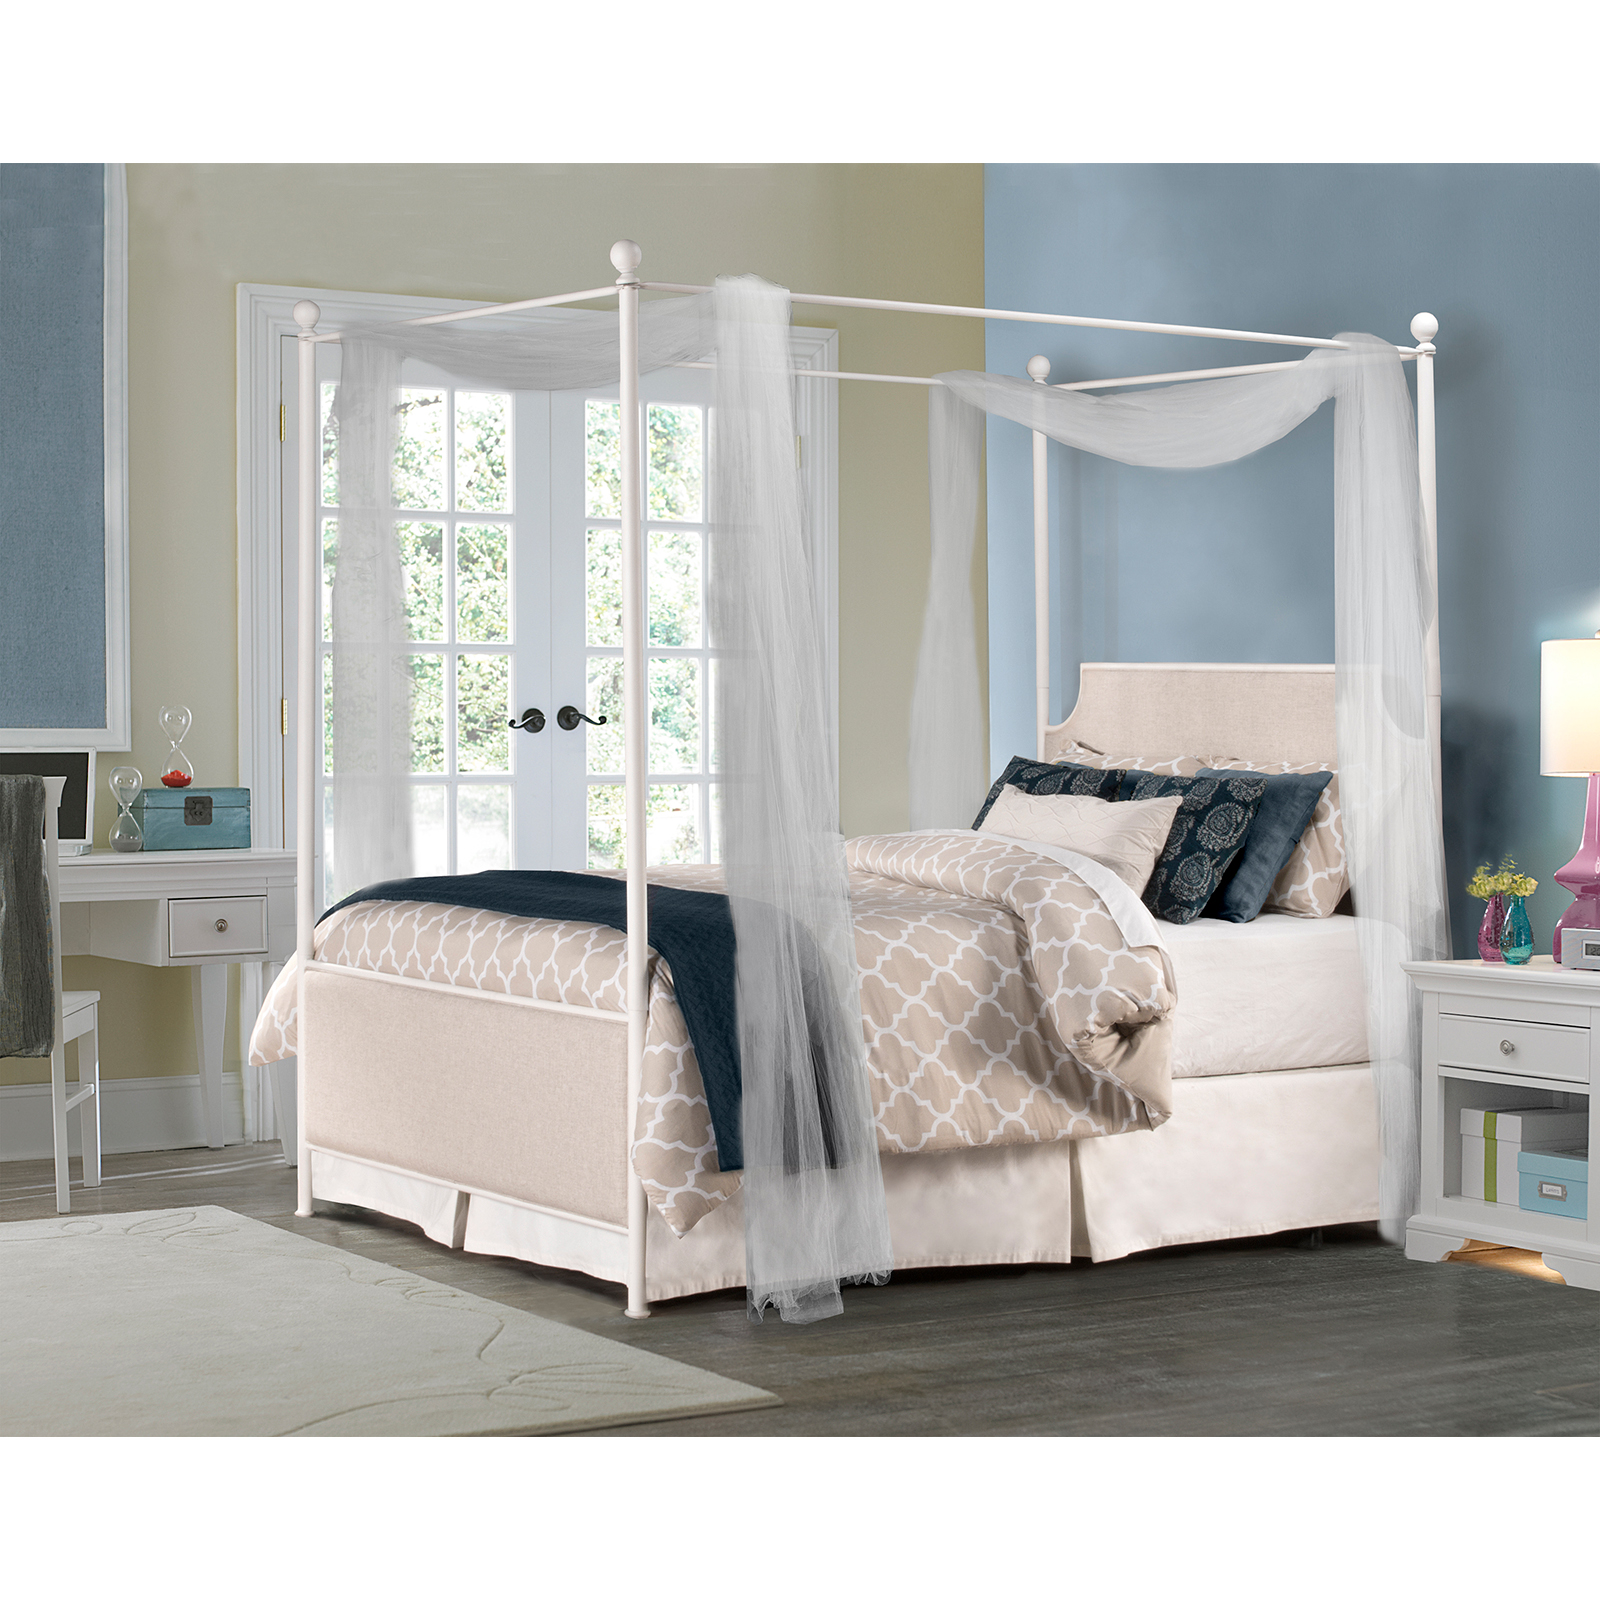 queen canopy bedroom sets.  Fashion Bed Group Sylvania Canopy Hayneedle